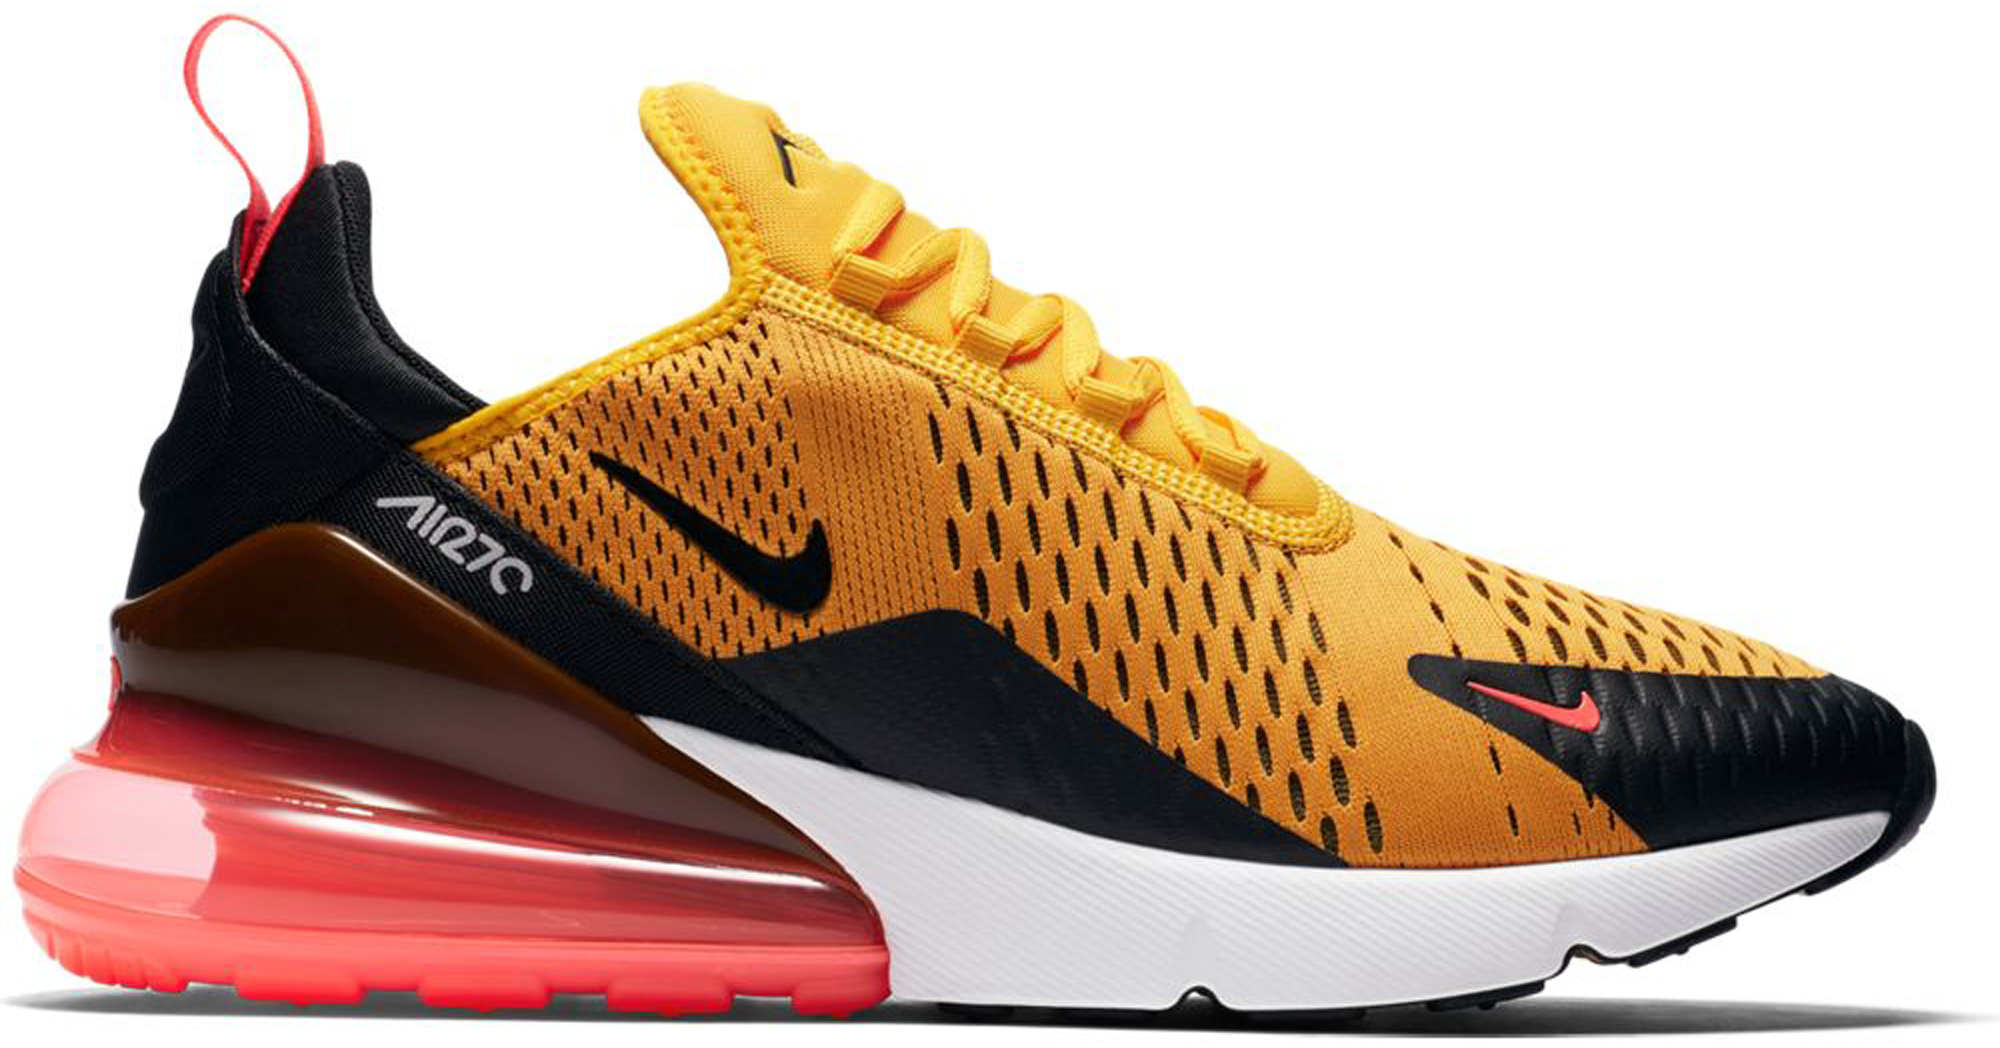 official photos 2f102 a940f Nike Air Max 270 University Gold